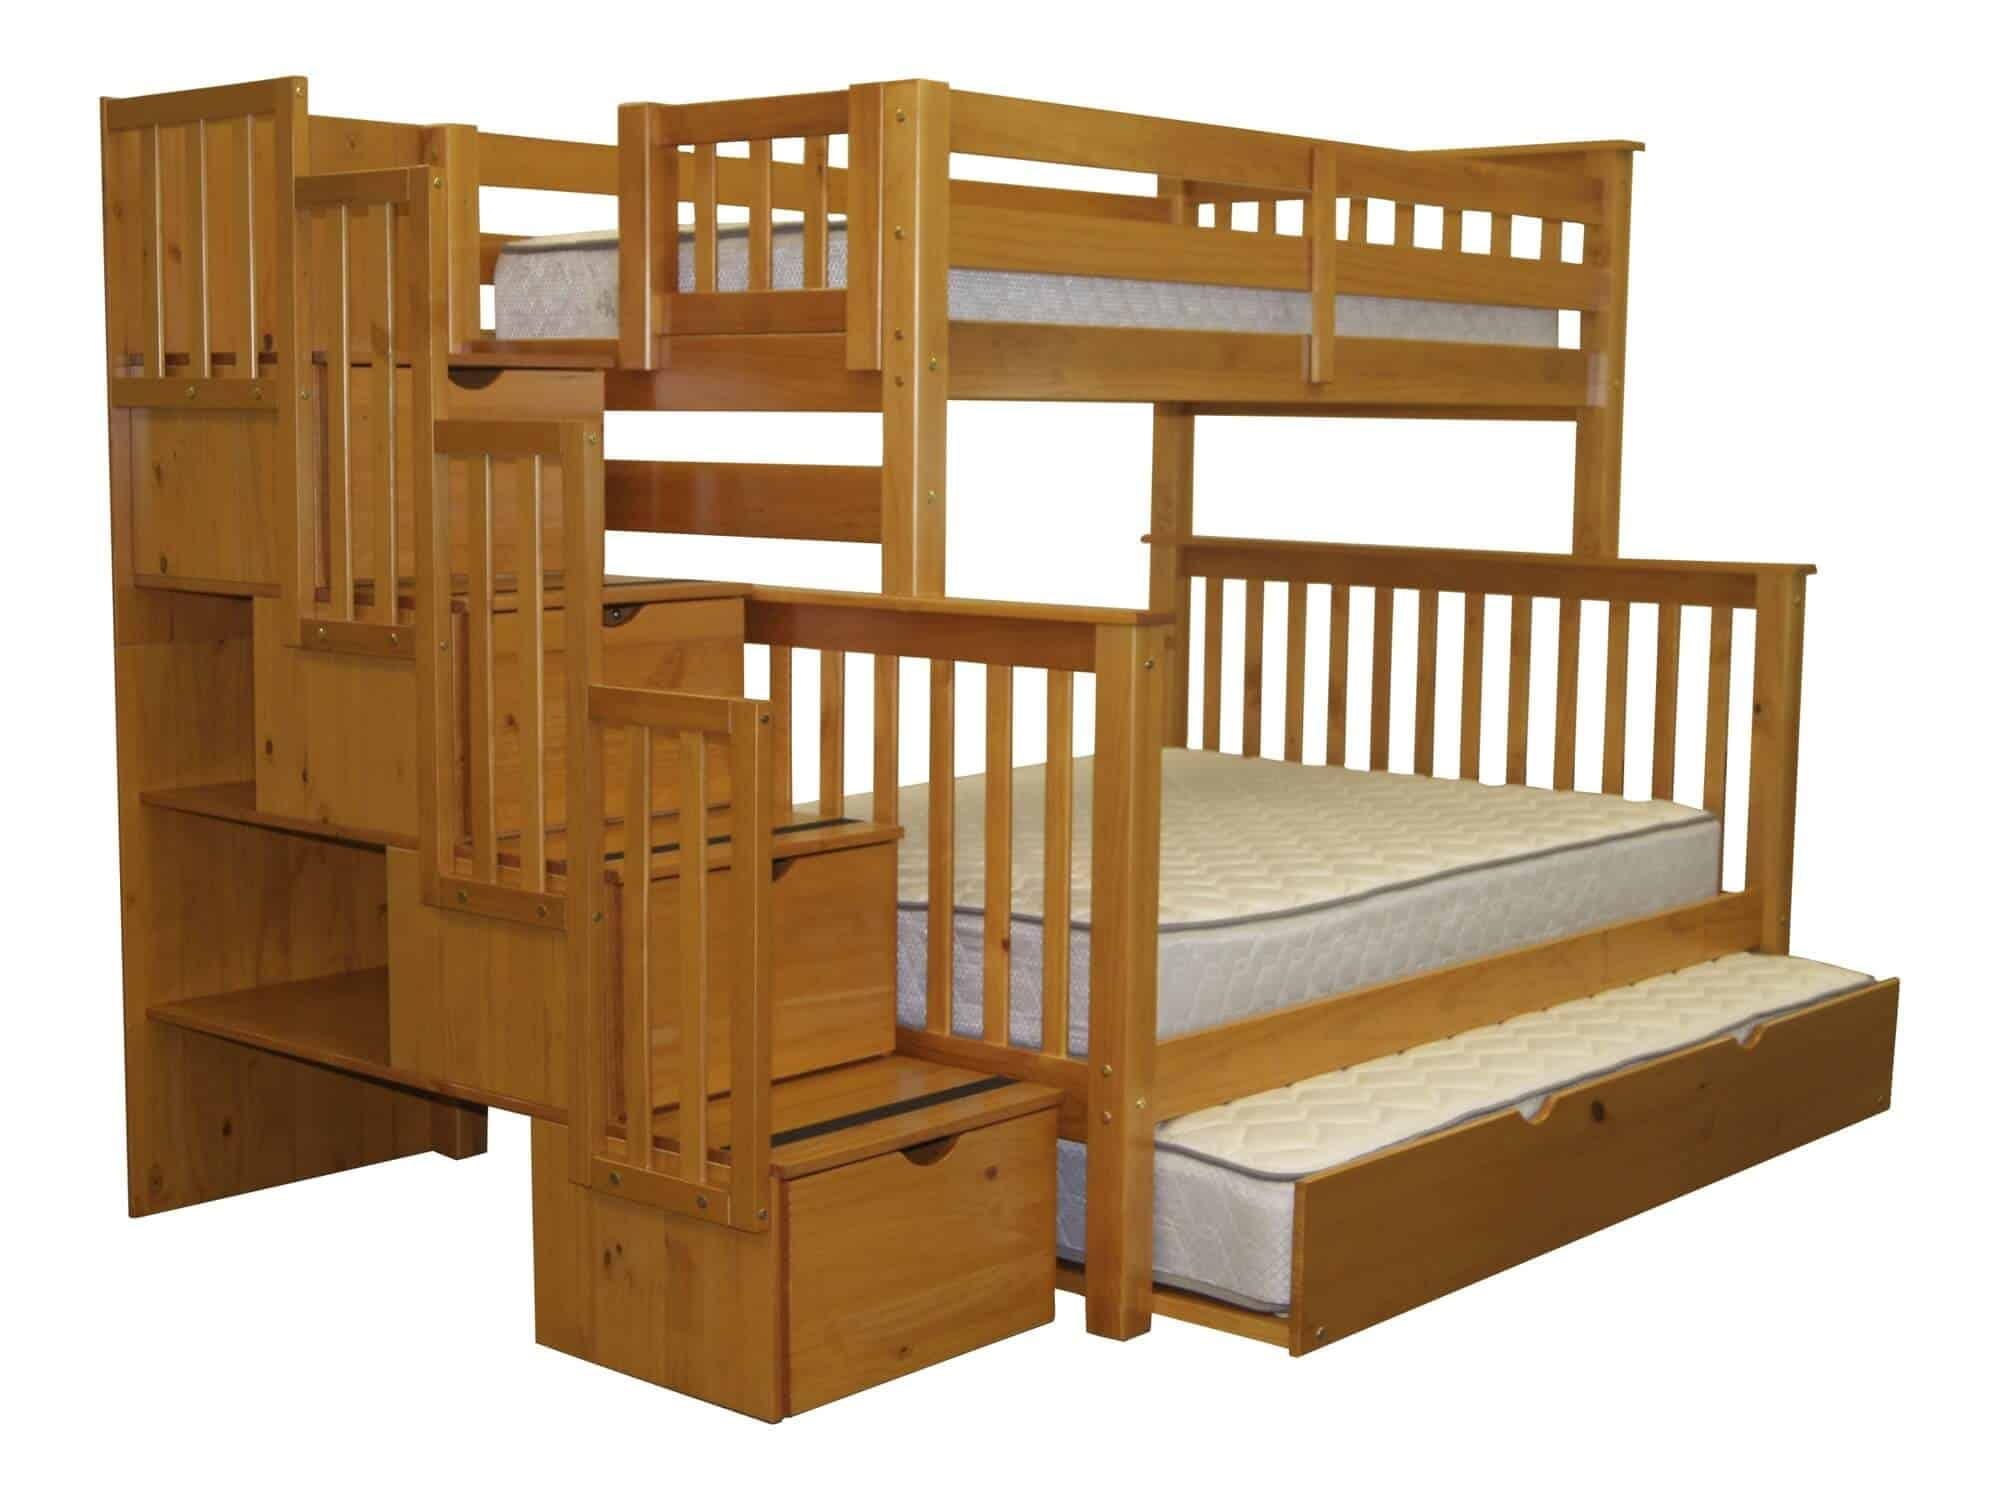 This rustic-styled natural wood bunk bed frame sports a third, trundle style bed beneath the lower bunk, in addition to large storage drawers within the stairs. Extra shelving is available behind the drawers, on the side of the unit.